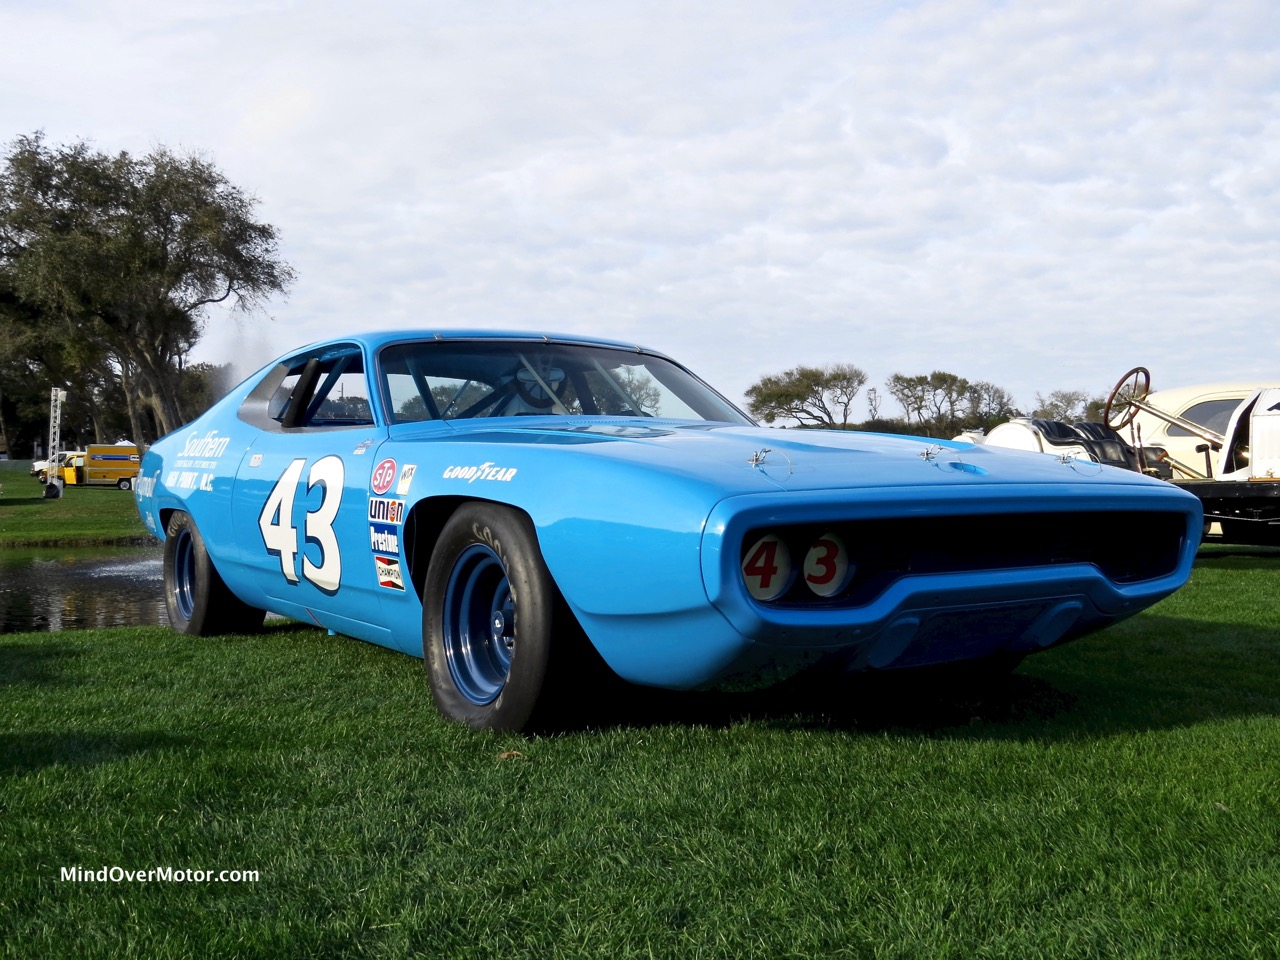 1971 plymouth road runner raced by richard petty at the. Black Bedroom Furniture Sets. Home Design Ideas